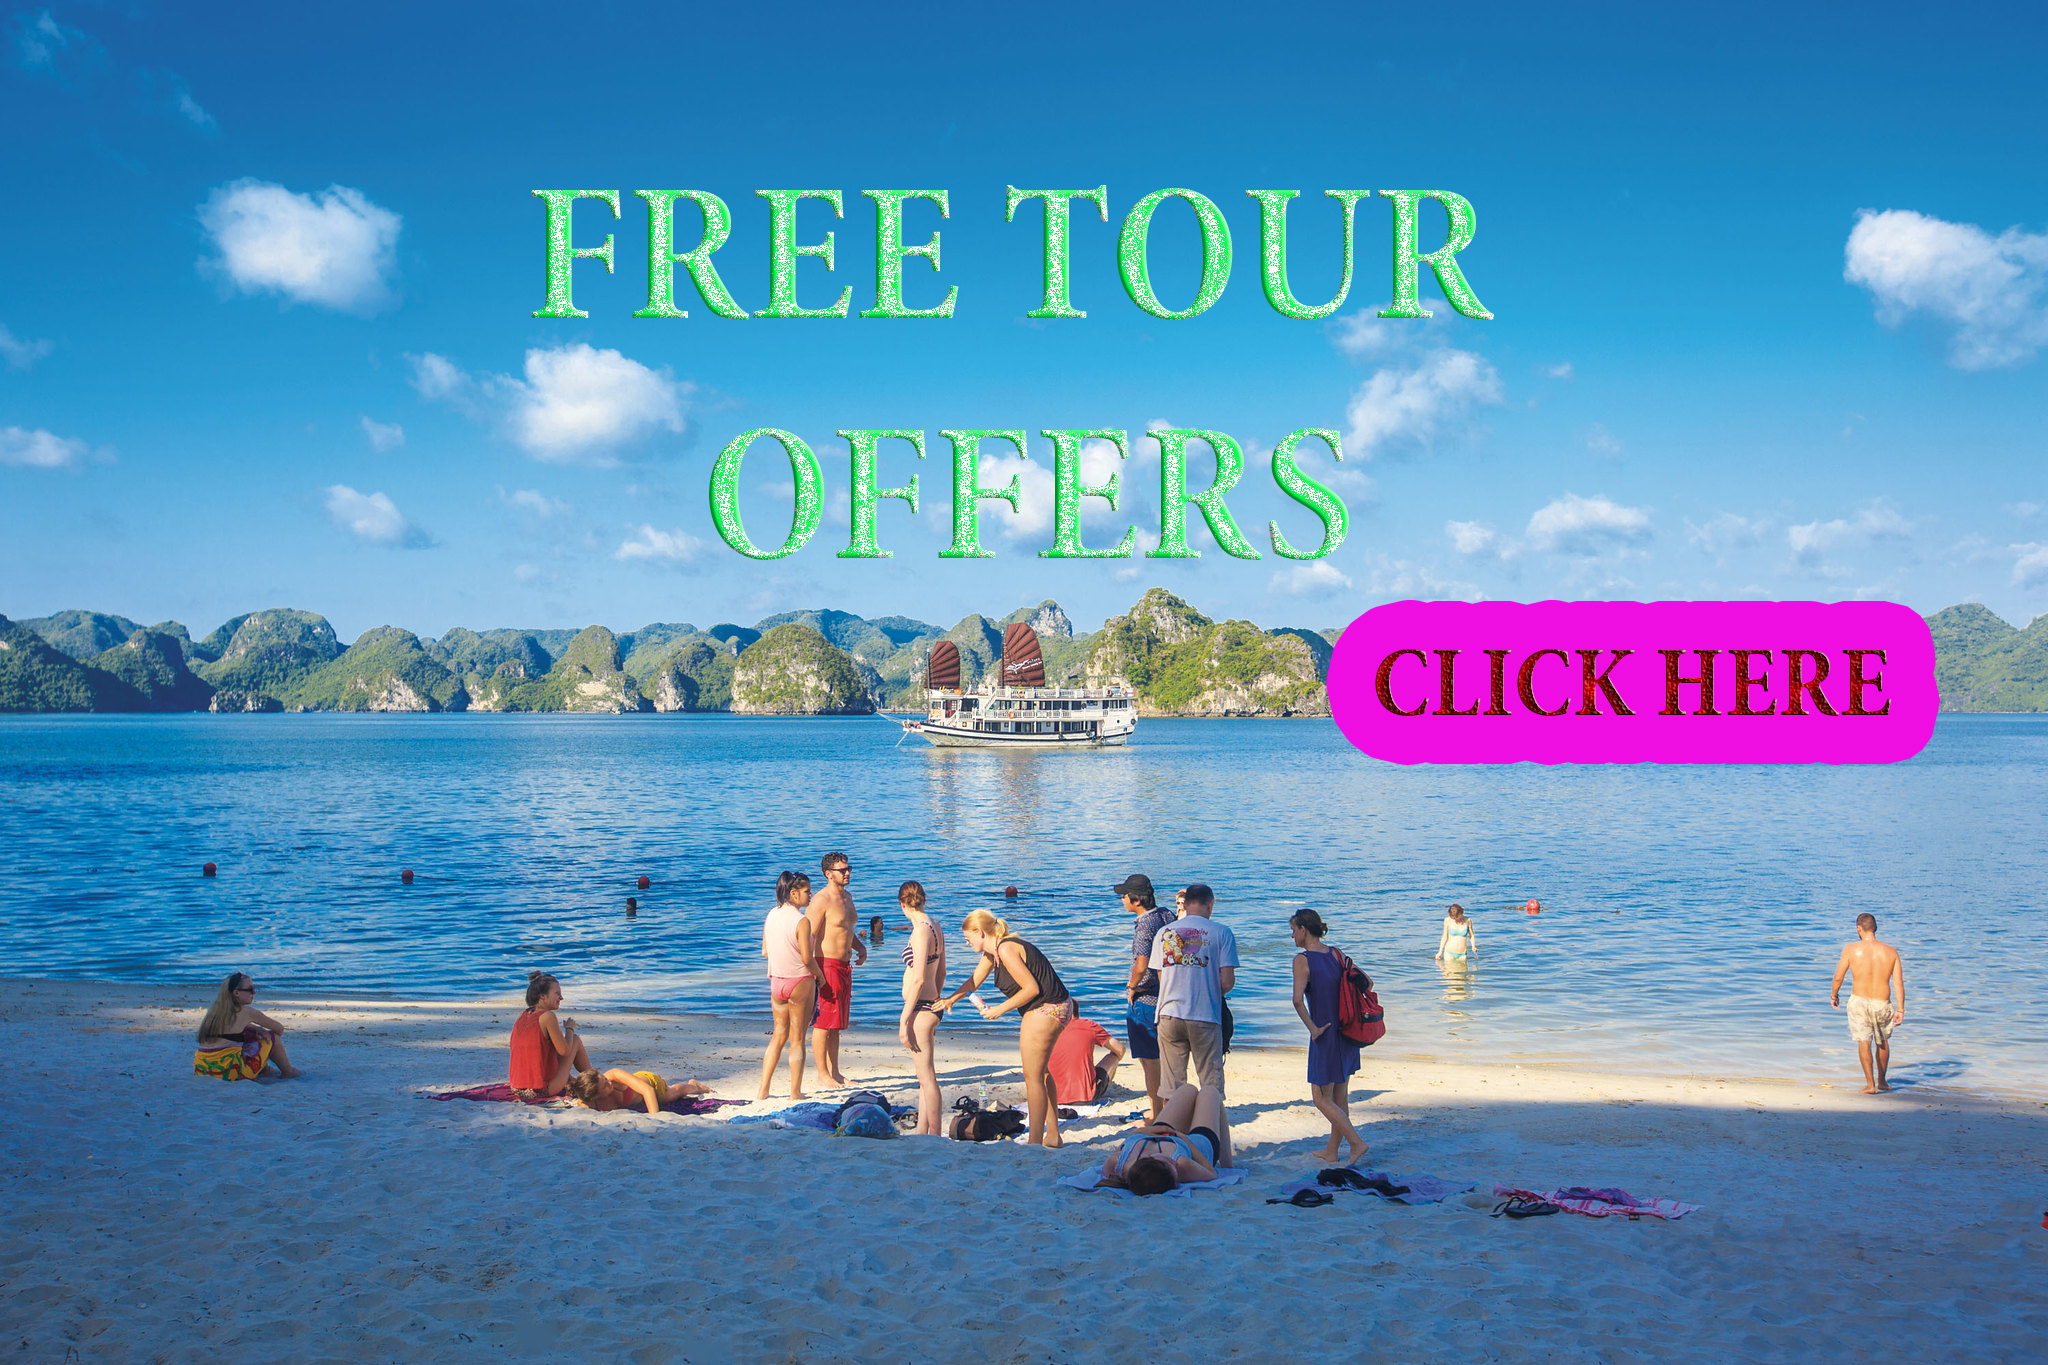 Free Tour Offers in Vietnam